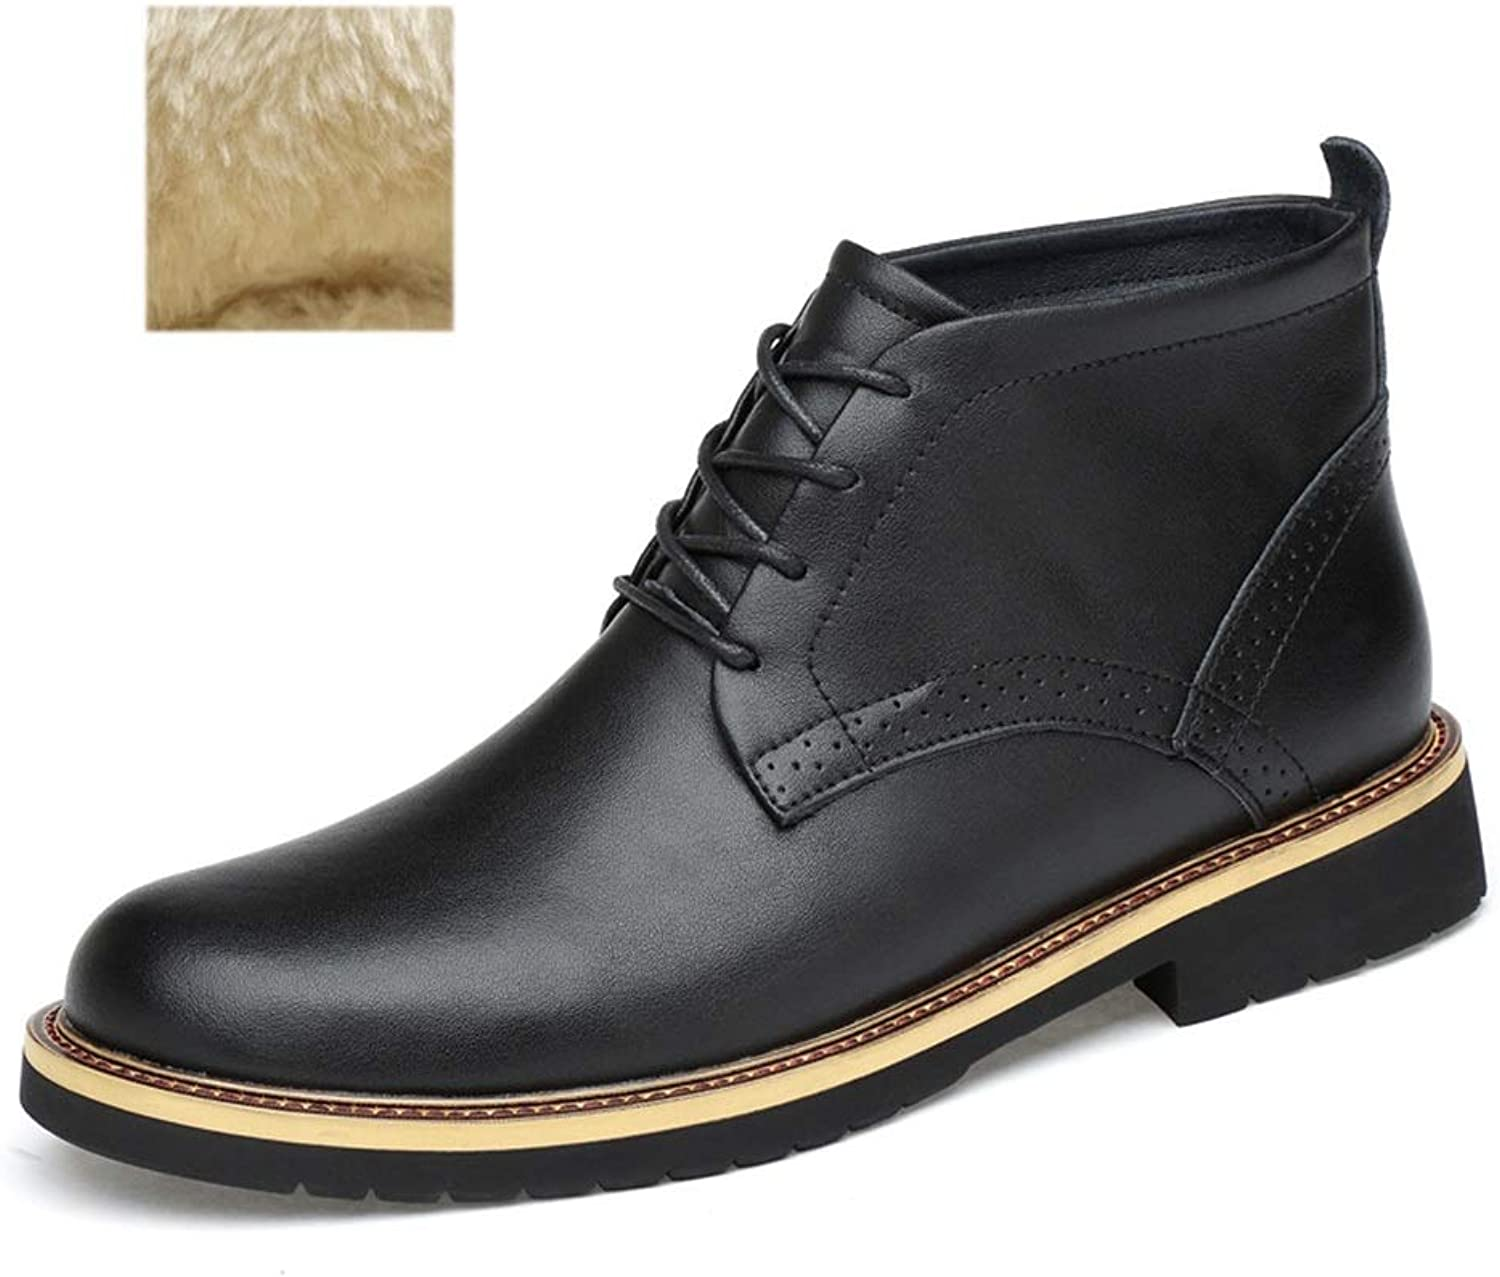 Men's Tooling Boots Plus VelvetKeep Warm Fall Winter Leather shoes Non Slip Shock Absorption Lace-up Martin Booties (color   Black, Size   44)